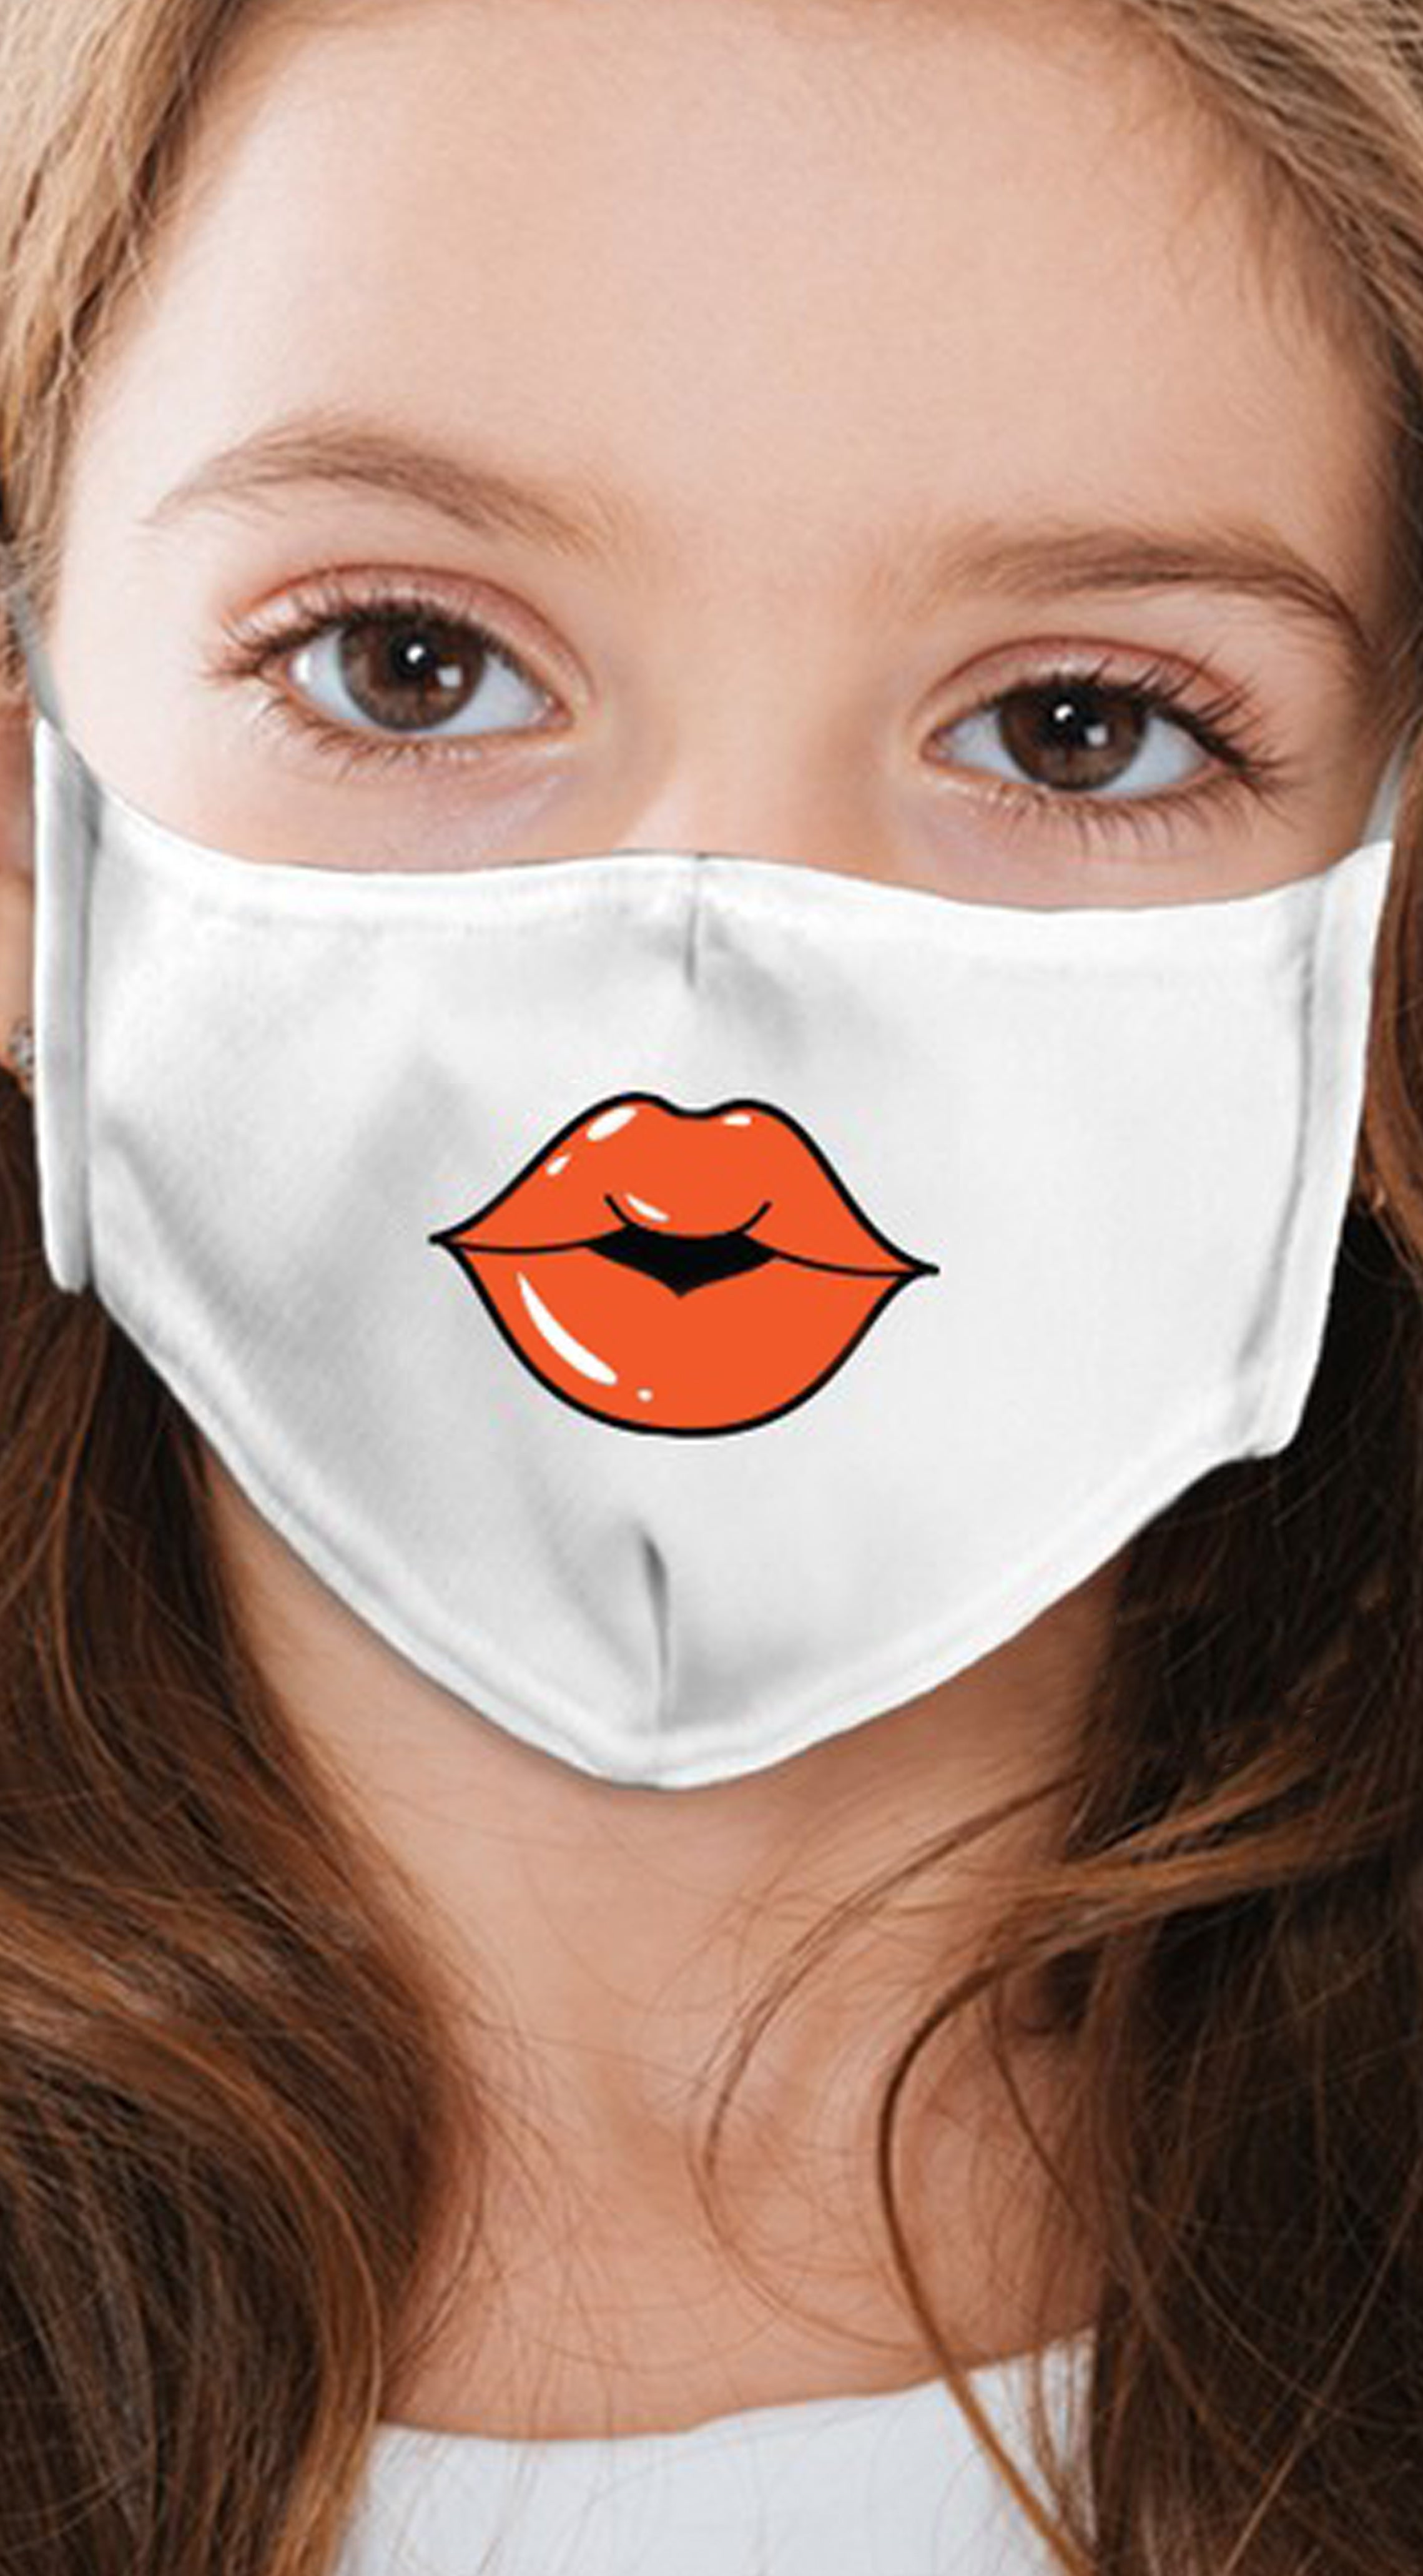 Lips Orange White Girl's Reusable Face Mask